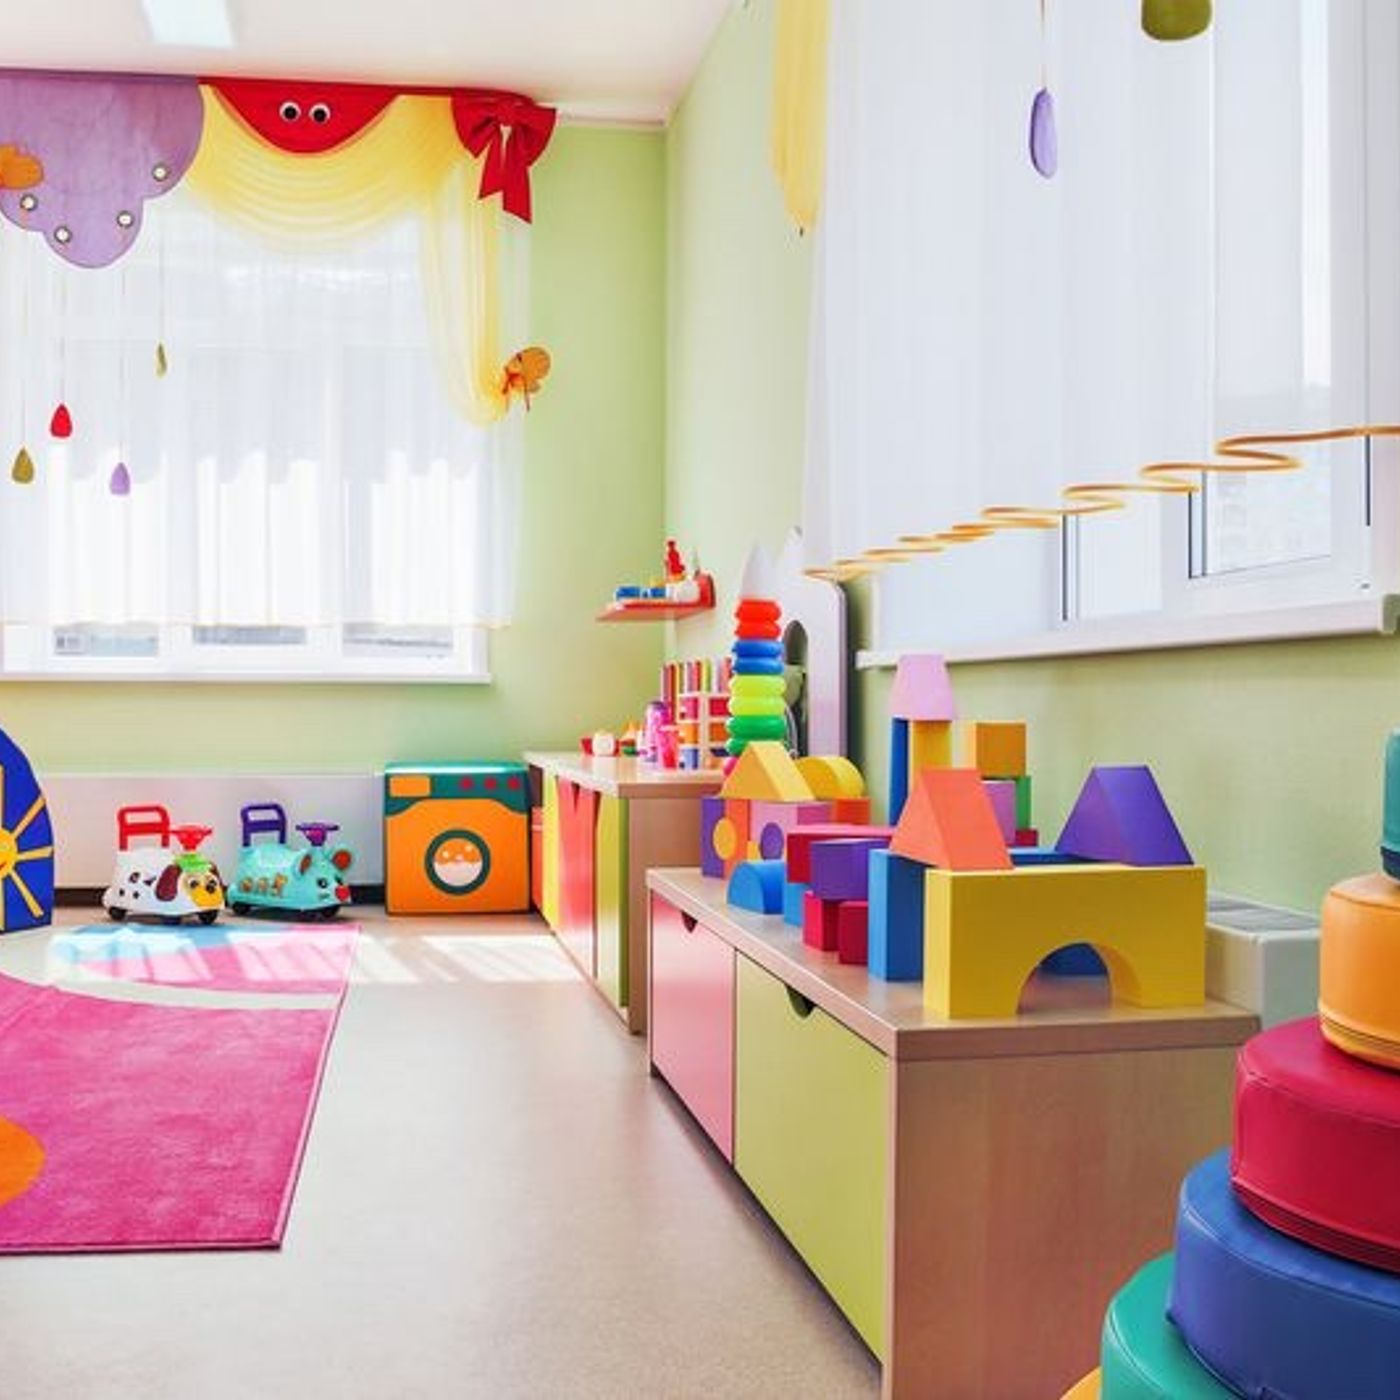 Secret wall at Colorado day care concealed 26 kids